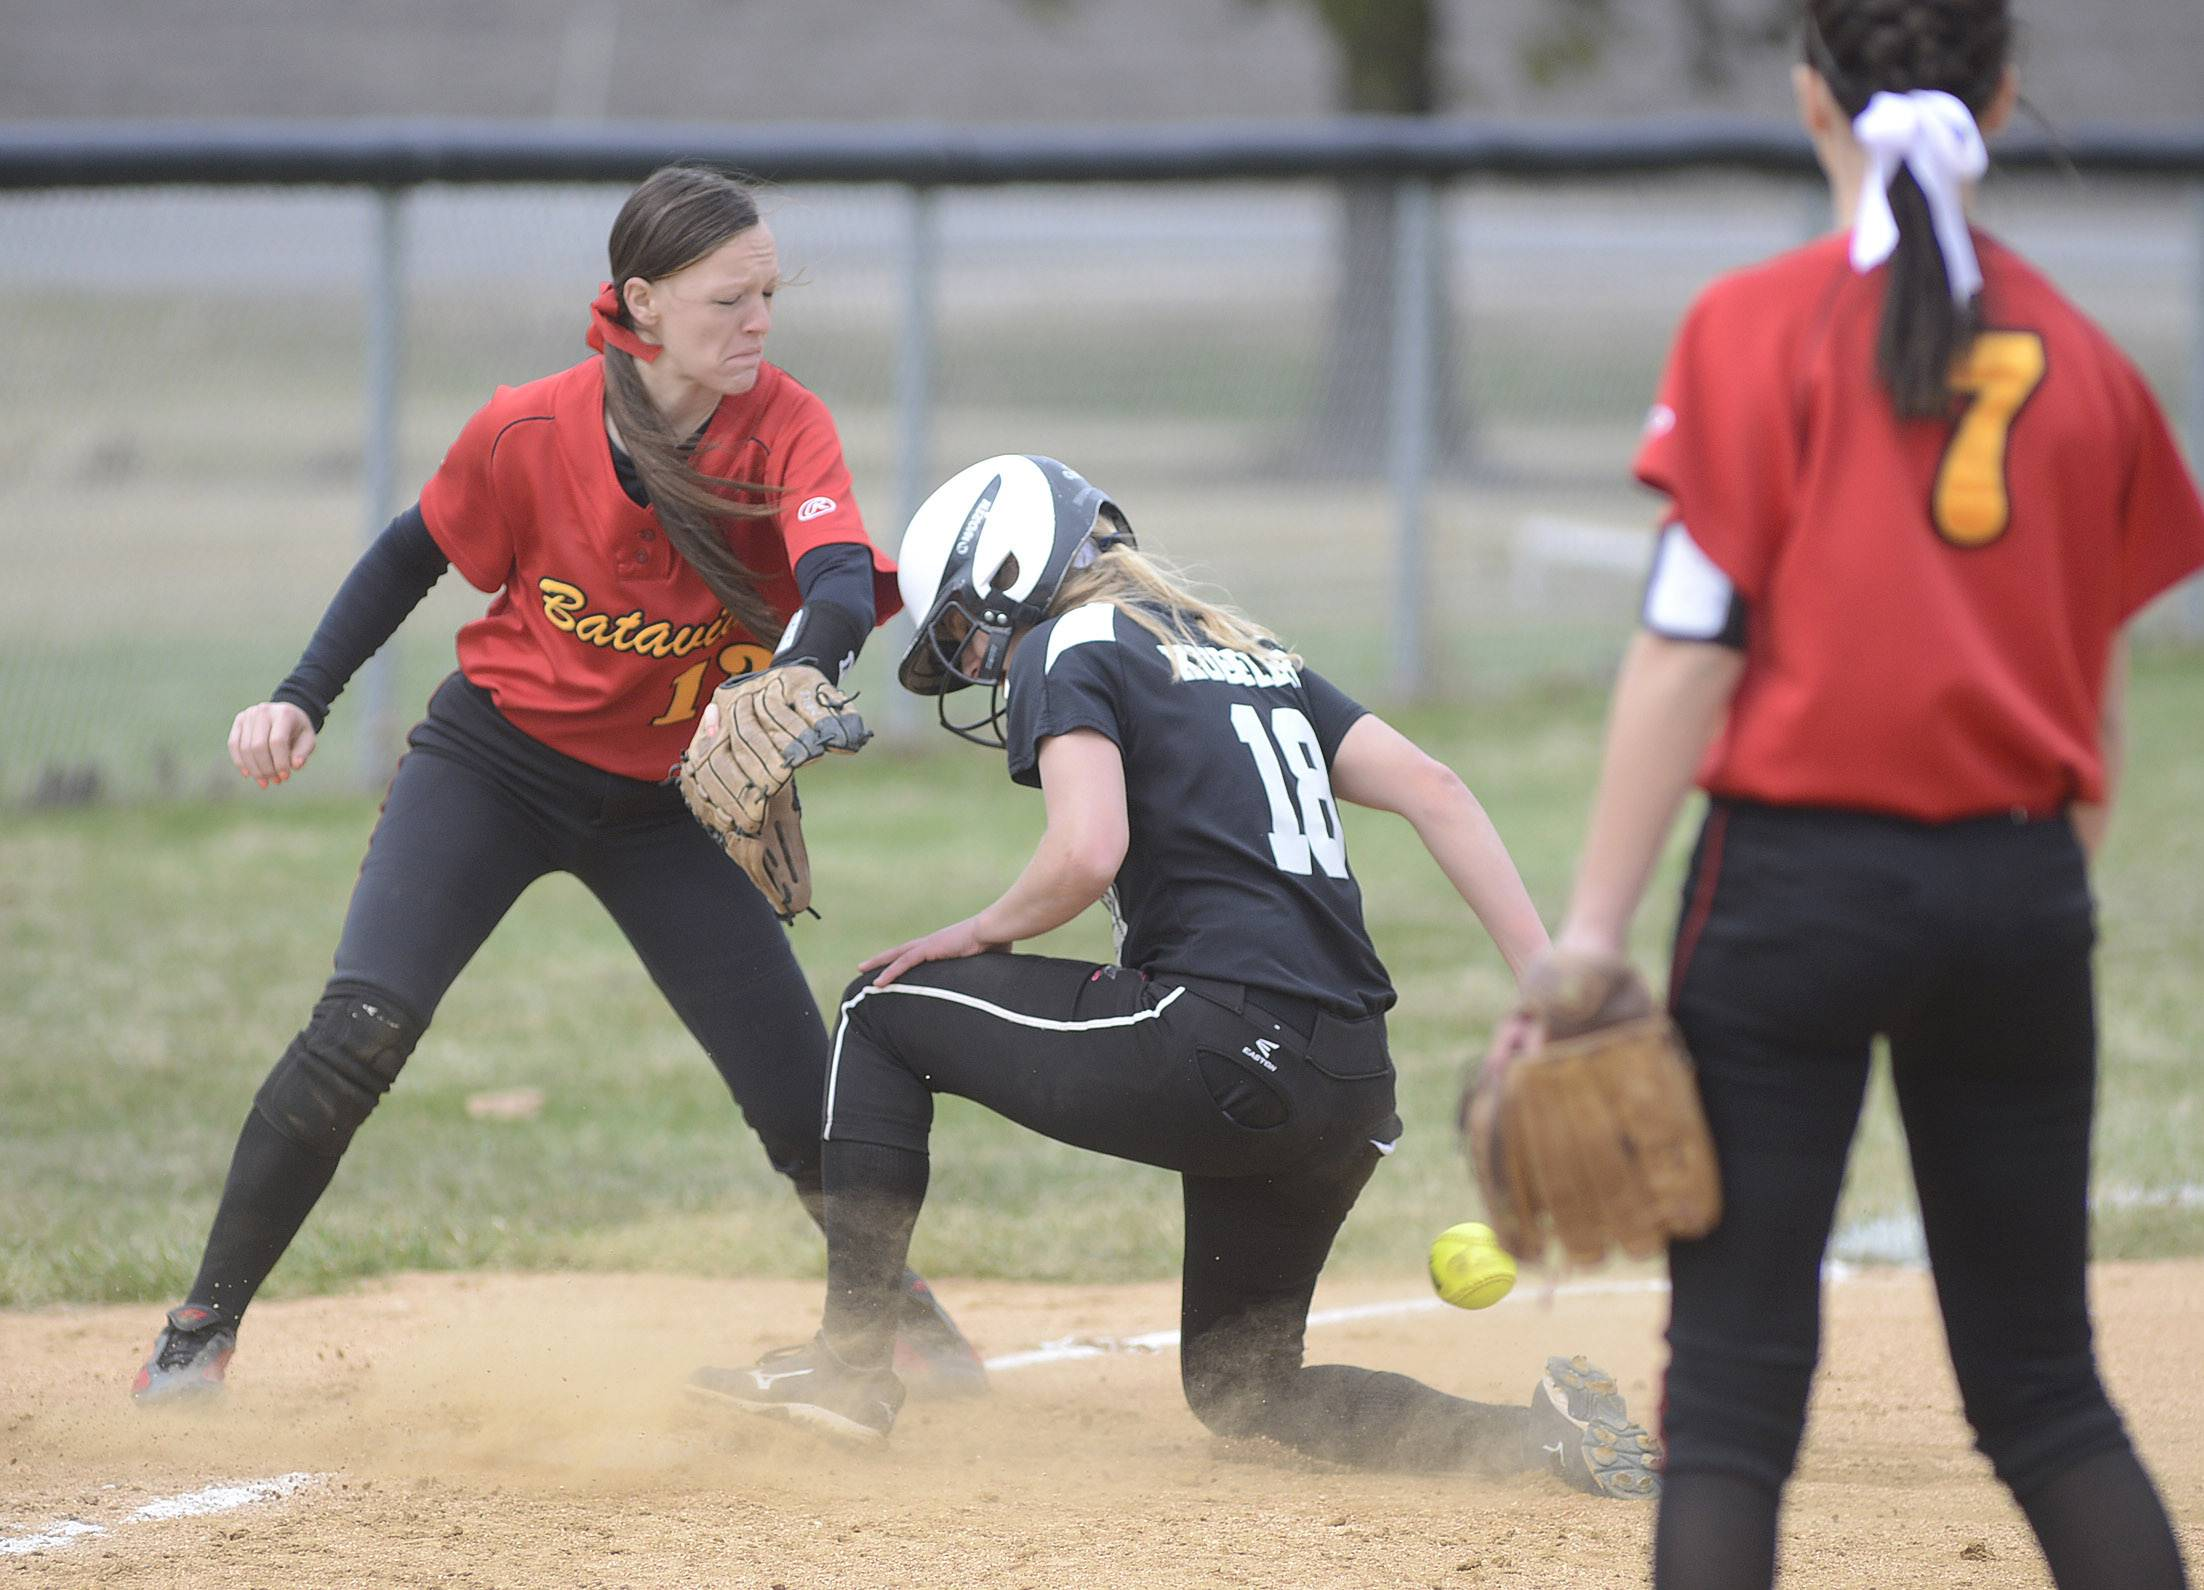 Kaneland's Paige Kuefler slides into third base, the ball bouncing off her as Batavia's Nina Karius reaches for the ball in the second inning on Saturday.